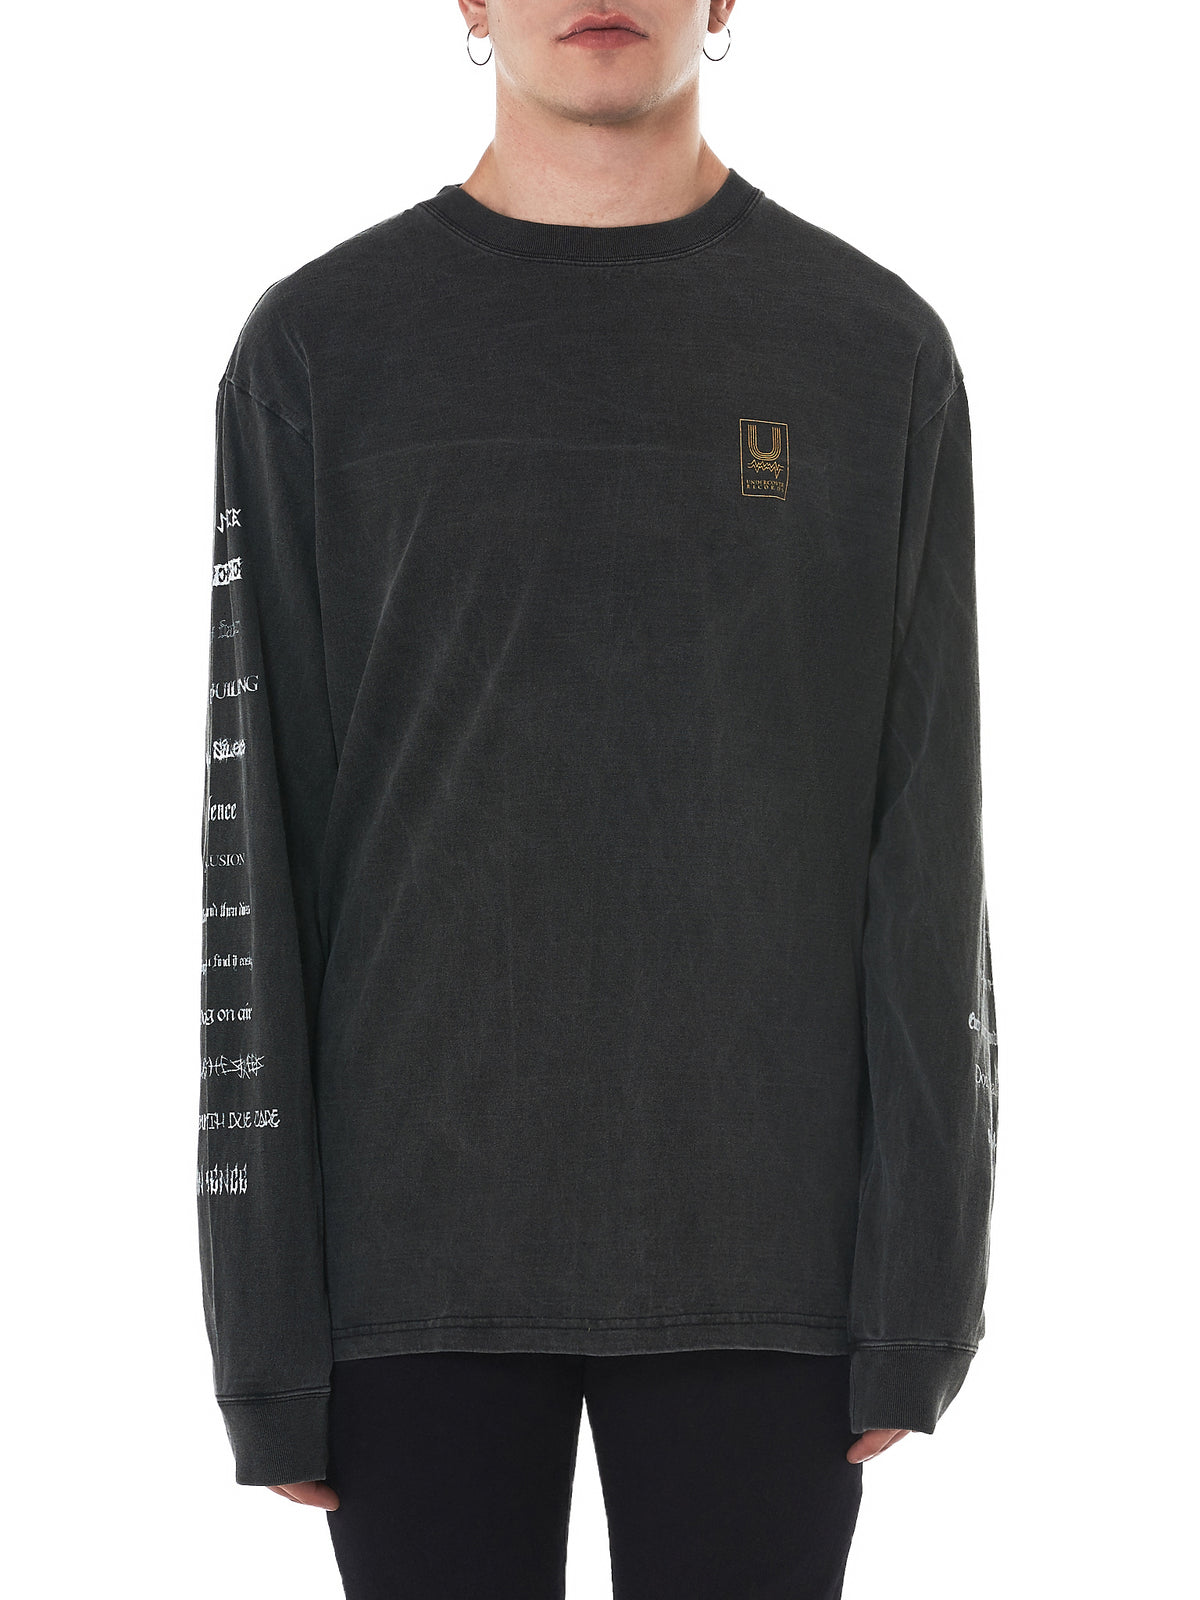 Undercover Long-Sleeve Tee - Hlorenzo Front